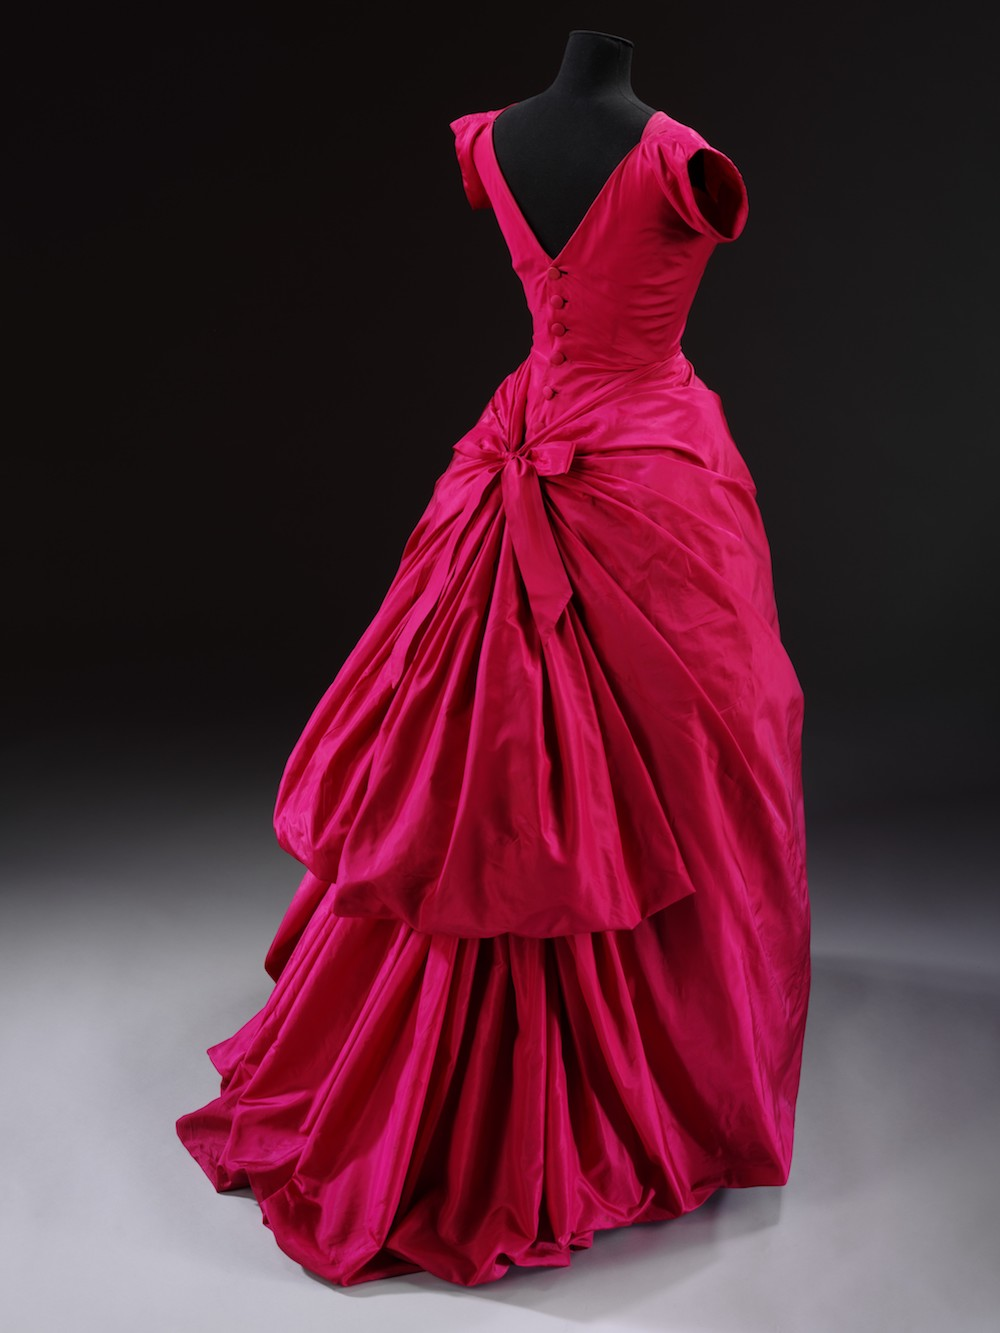 Evening dress, silk taffeta, Cristóbal Balenciaga, Paris, 1955 © Victoria and Albert Museum, London